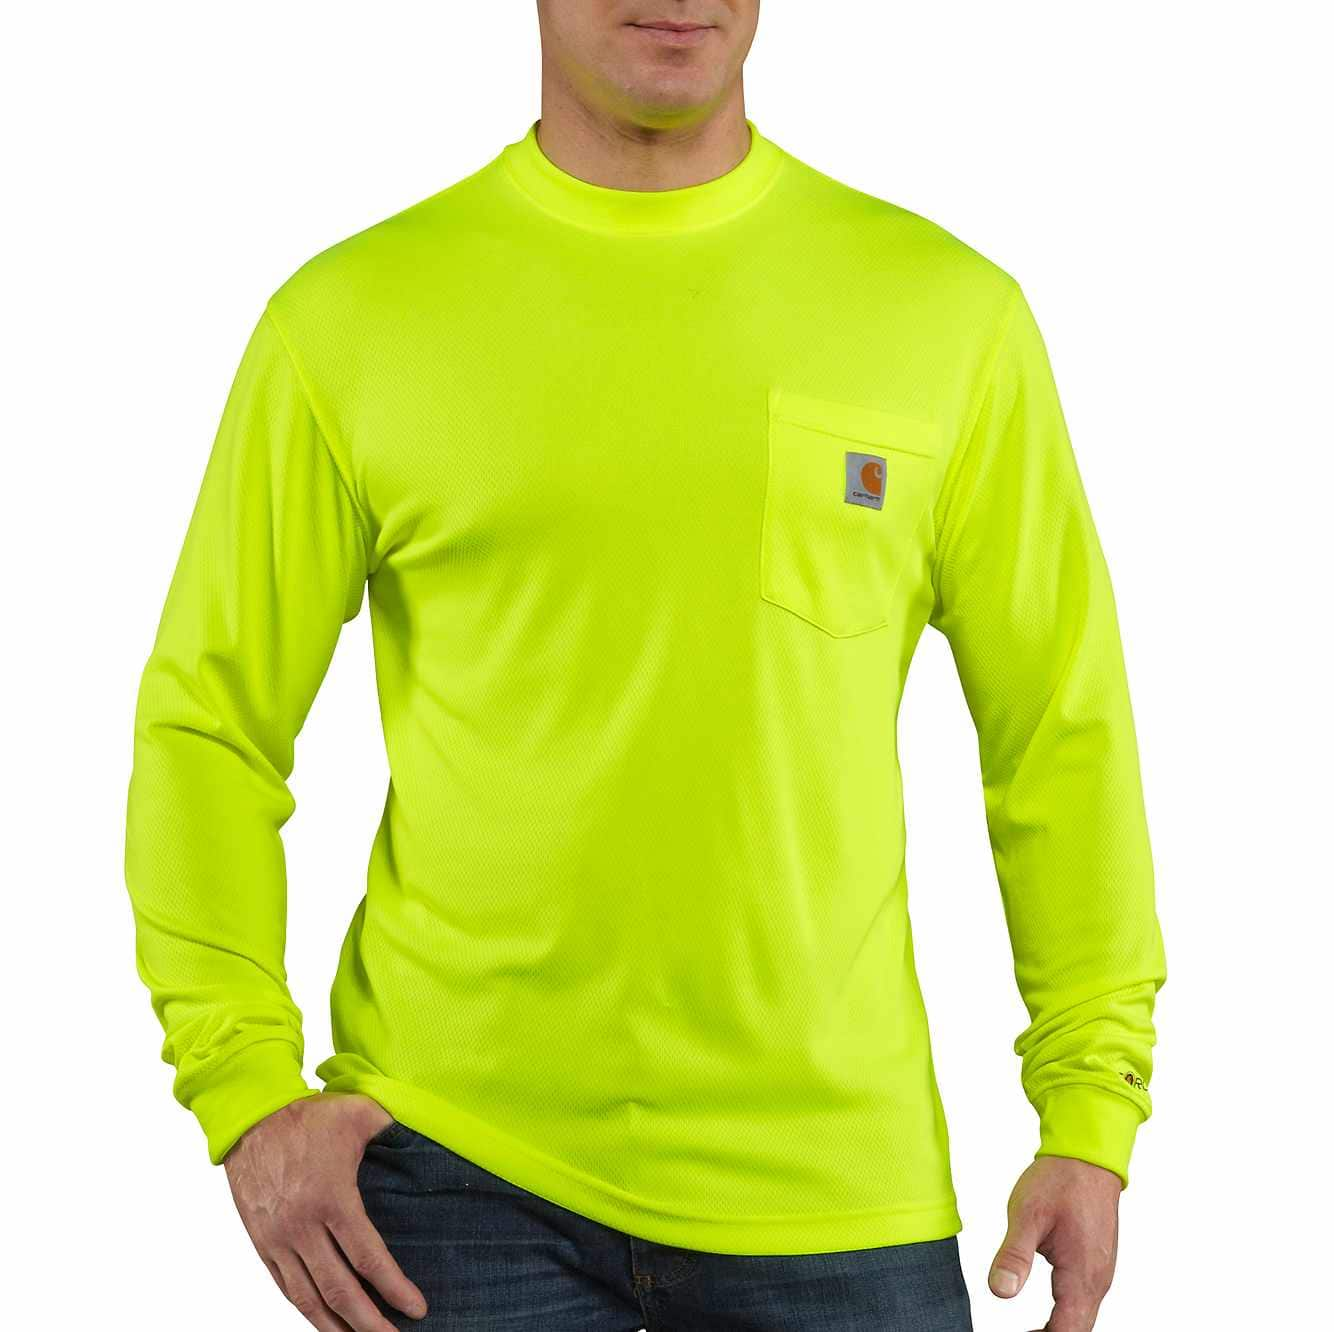 Carhartt Mens High Visibility Force Color Enhanced Long Sleeve Tee